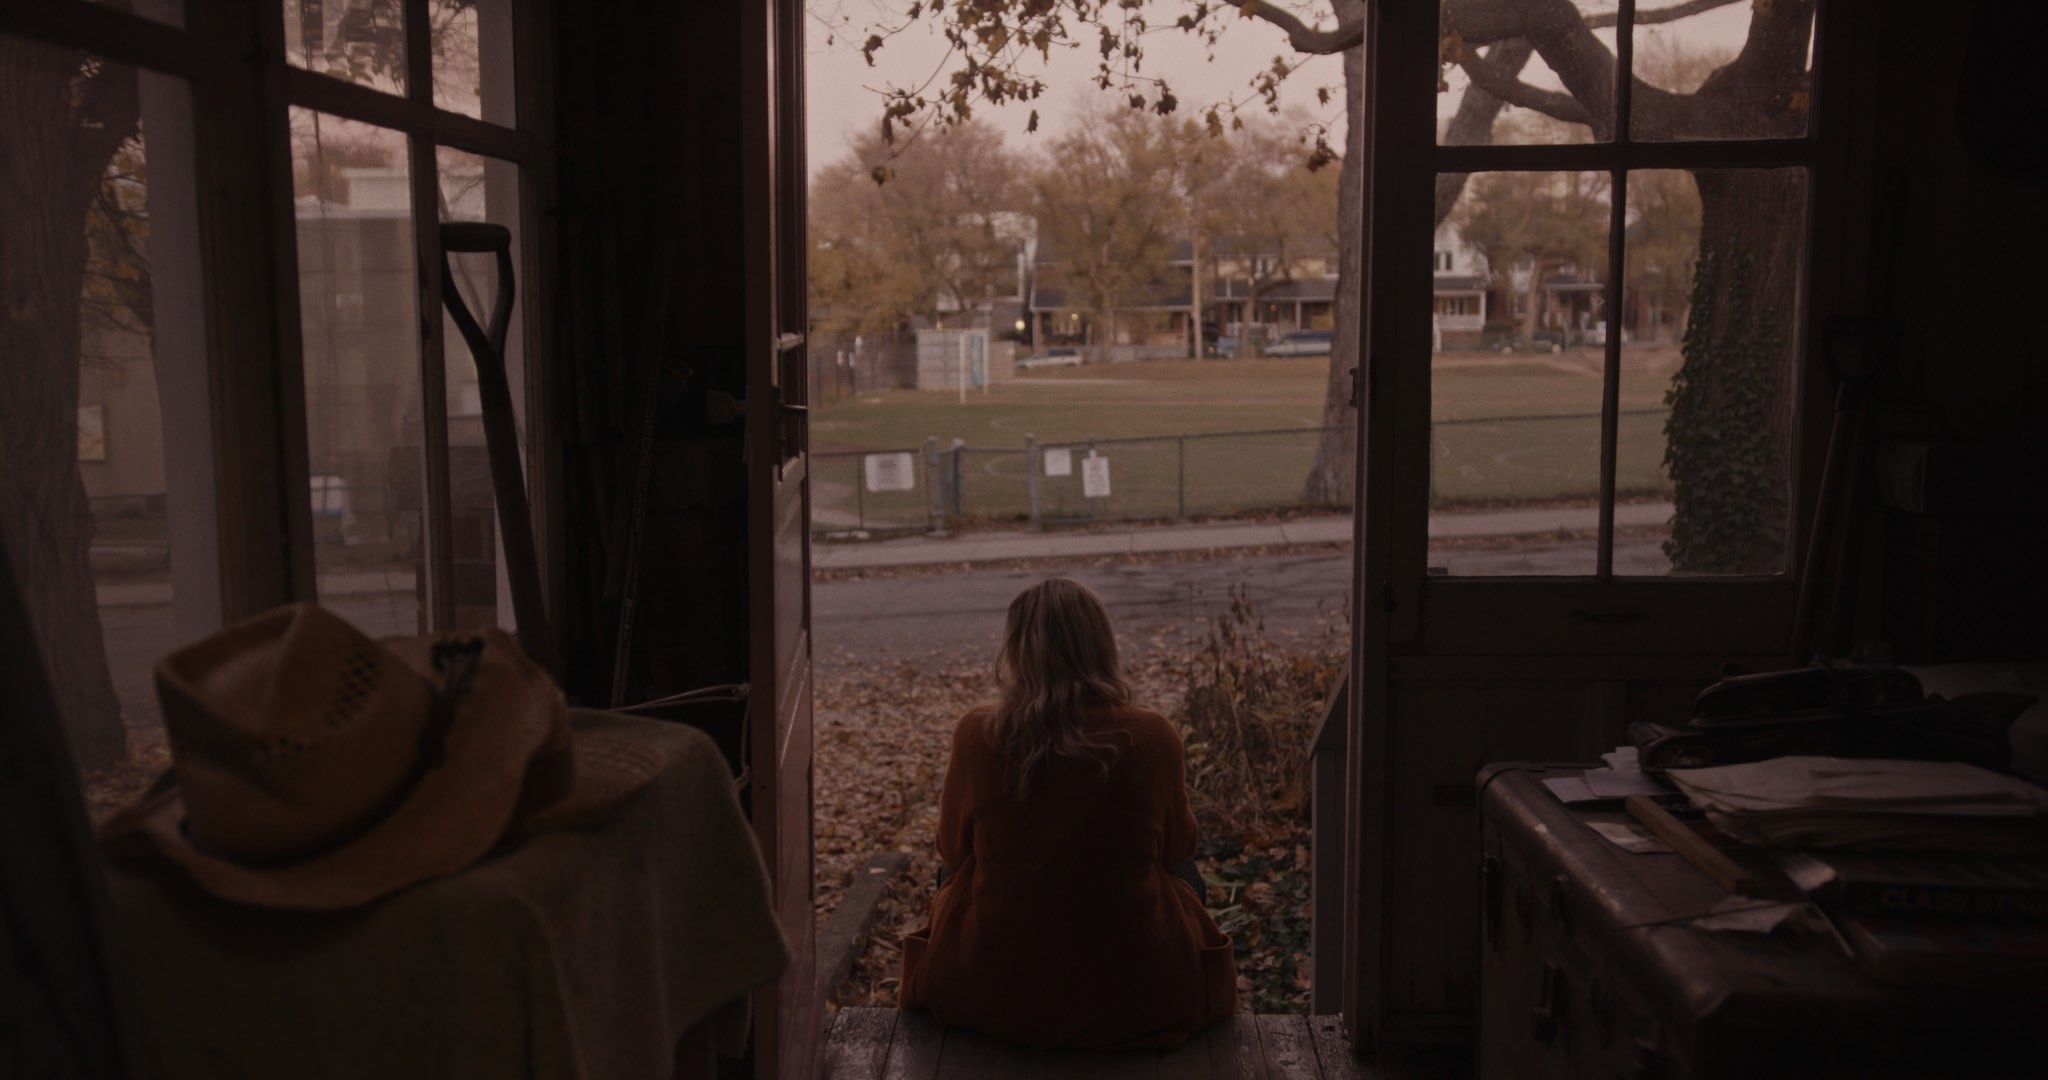 Still image from the short film Grandma was a Cowgirl. Cinematographer and Colorist Morgana McKenzie